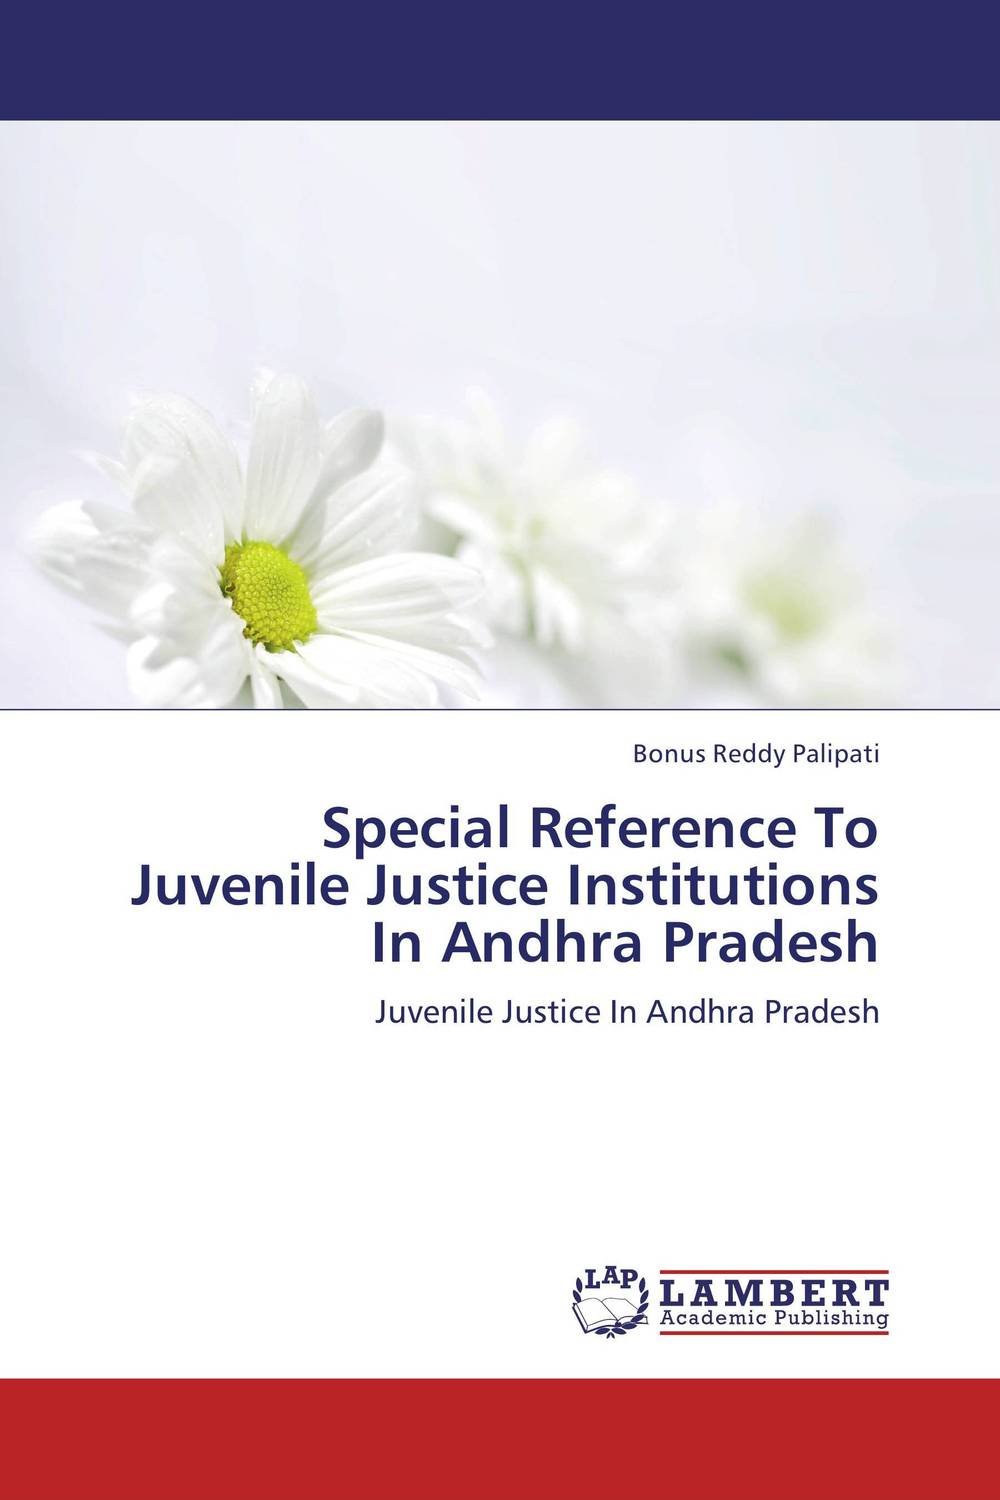 Special Reference To Juvenile Justice Institutions In Andhra Pradesh seeing things as they are